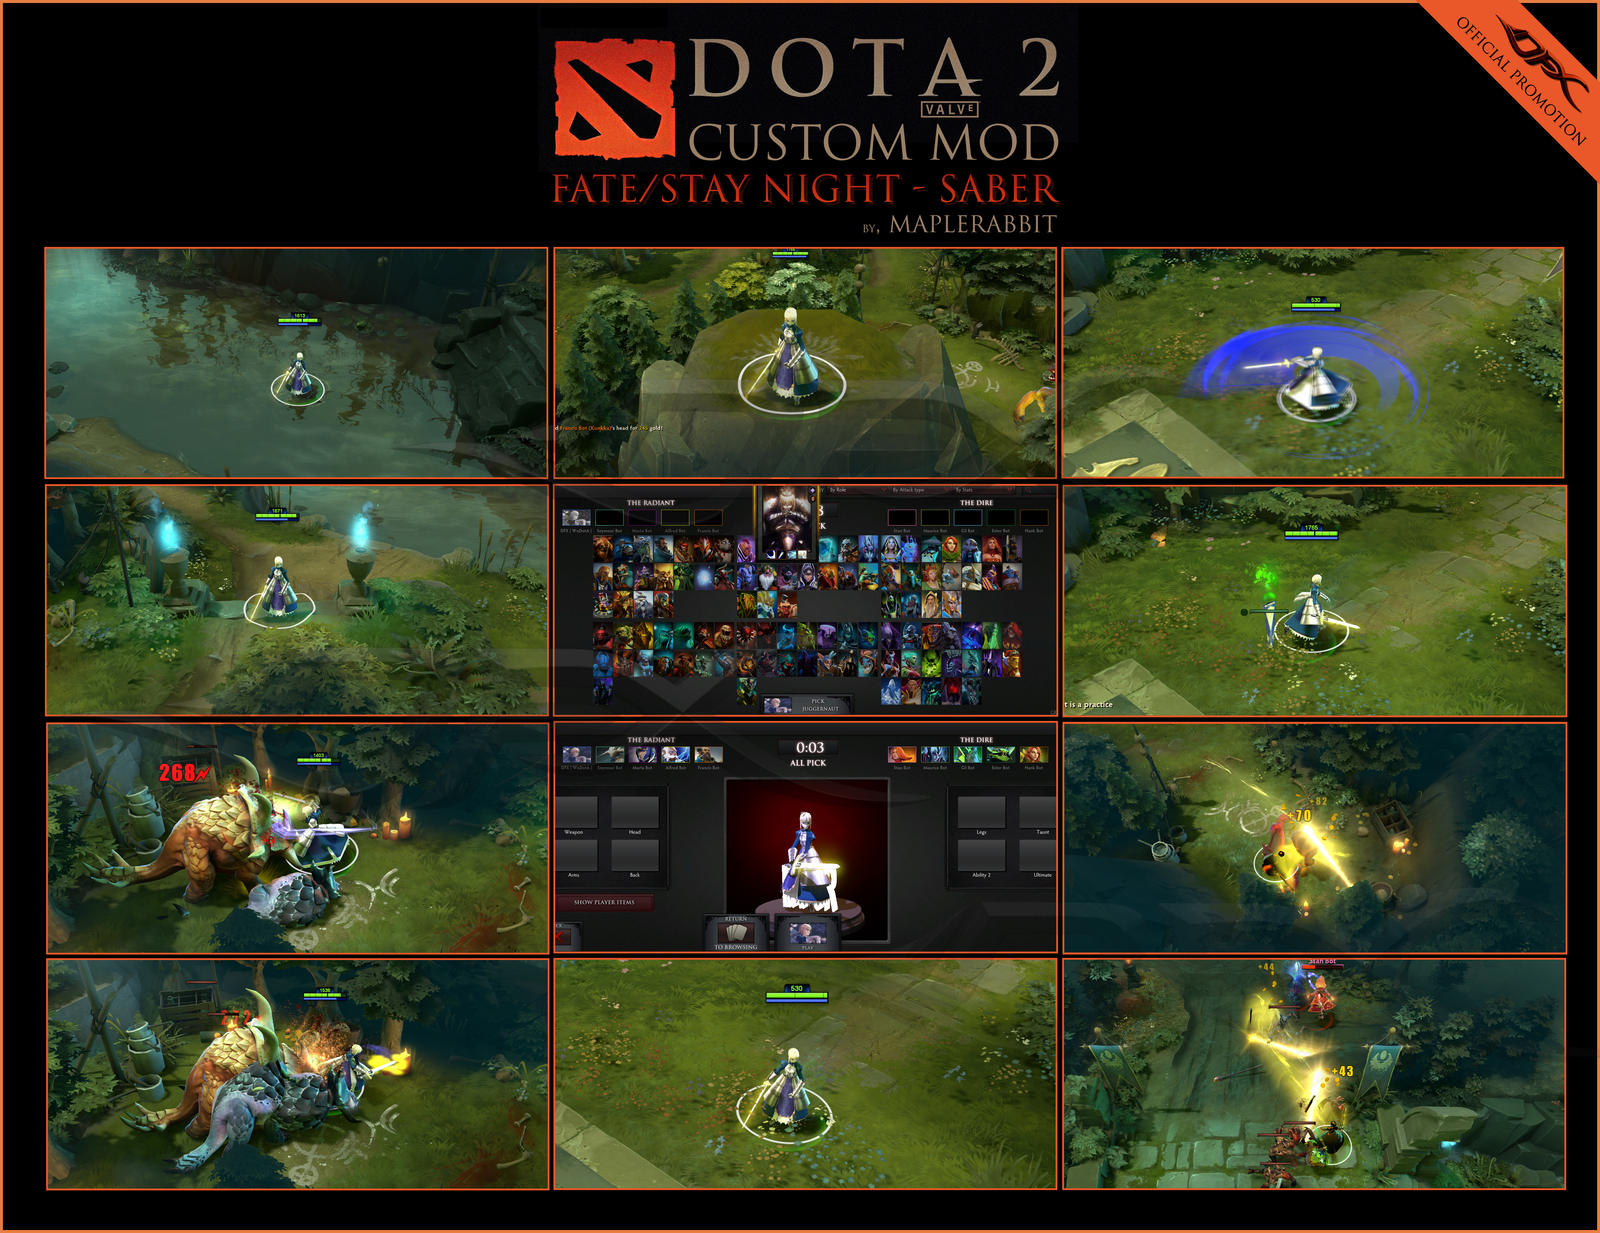 Saber Fate/Stay Night DotA2 Mod by DotaFX on DeviantArt